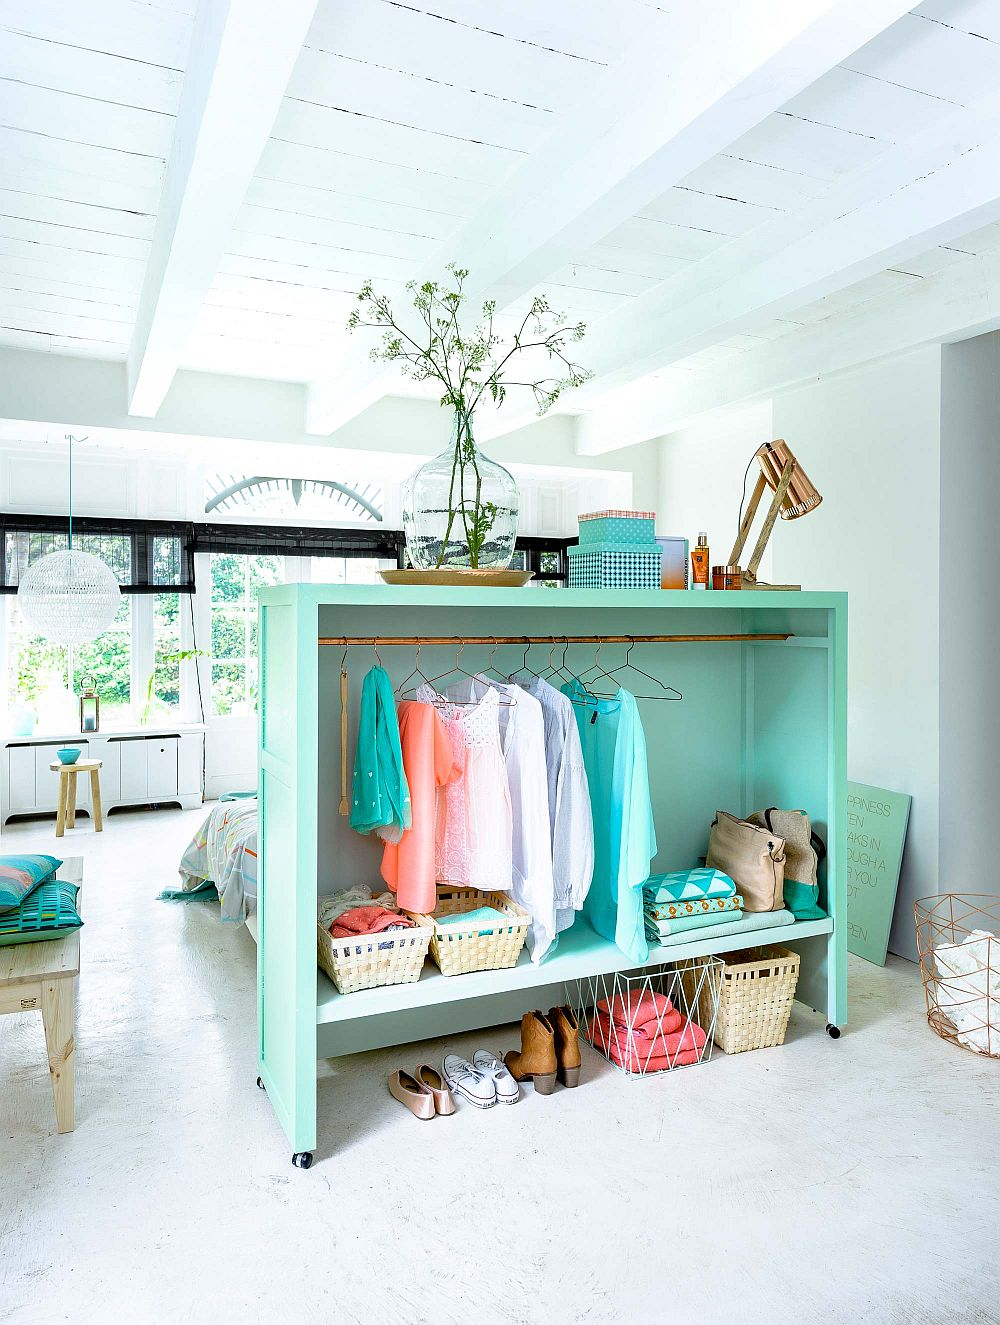 80 DIY Bedroom Storage and Décor Ideas that Bring Space-Savvy Style